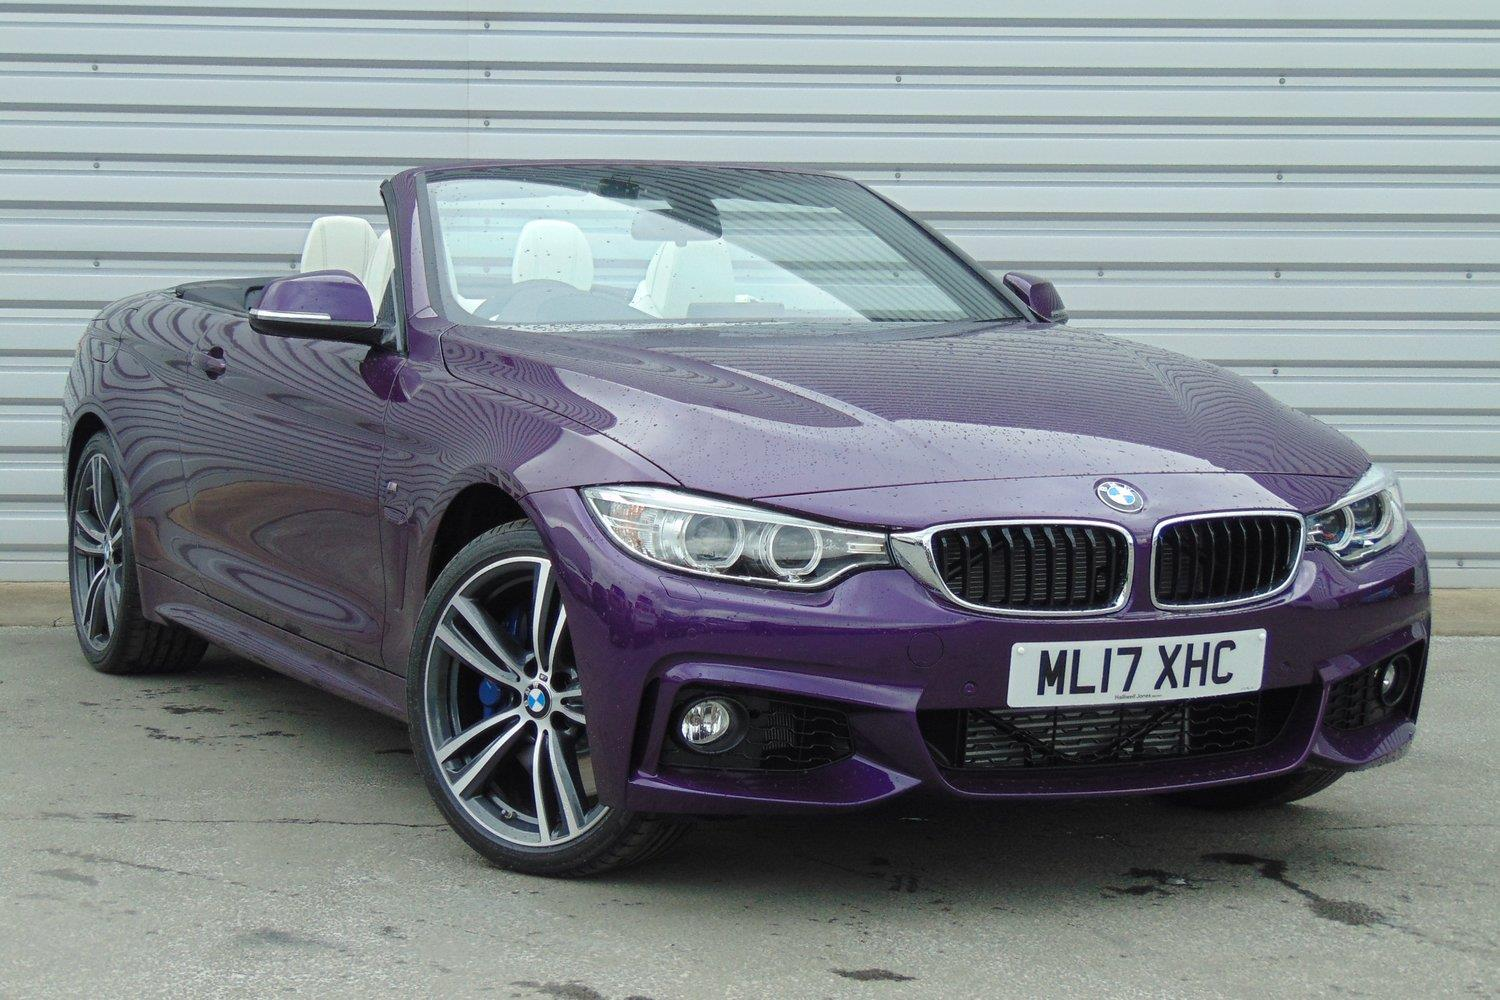 BMW 4 Series Convertible ML17XHC - Image 7